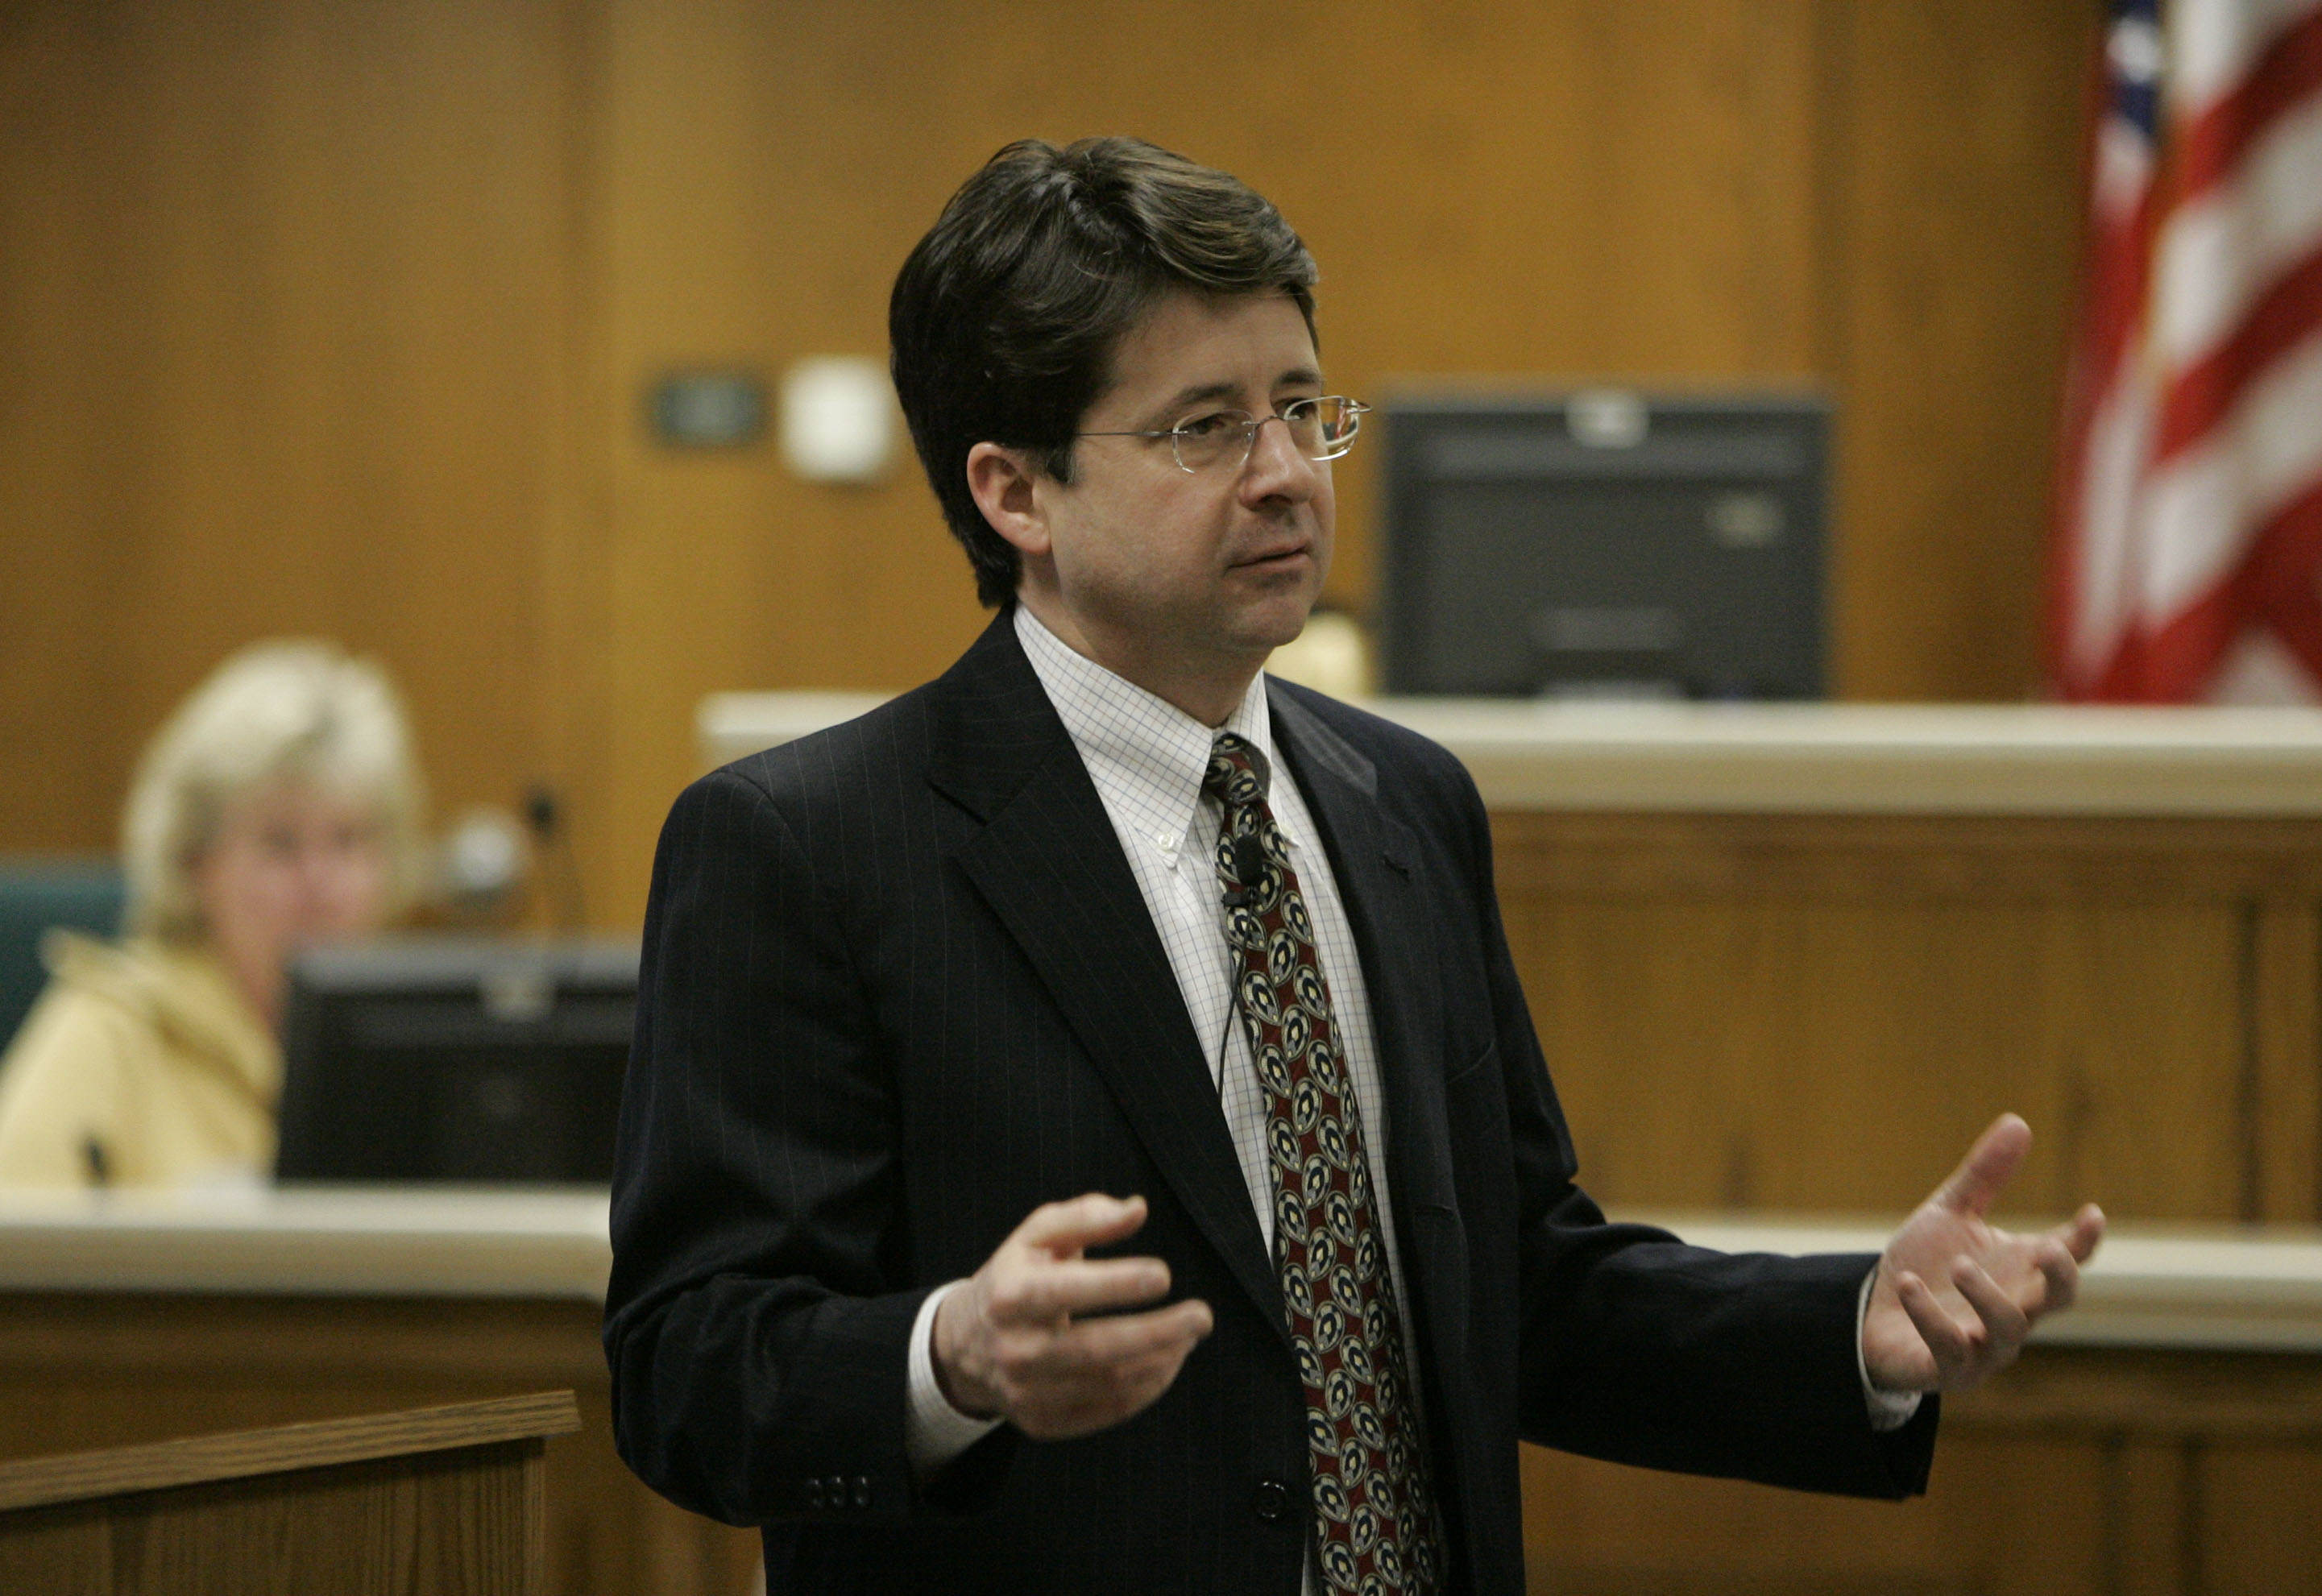 strang2 Everyones Favourite Making A Murderer Lawyer To Get Own Series